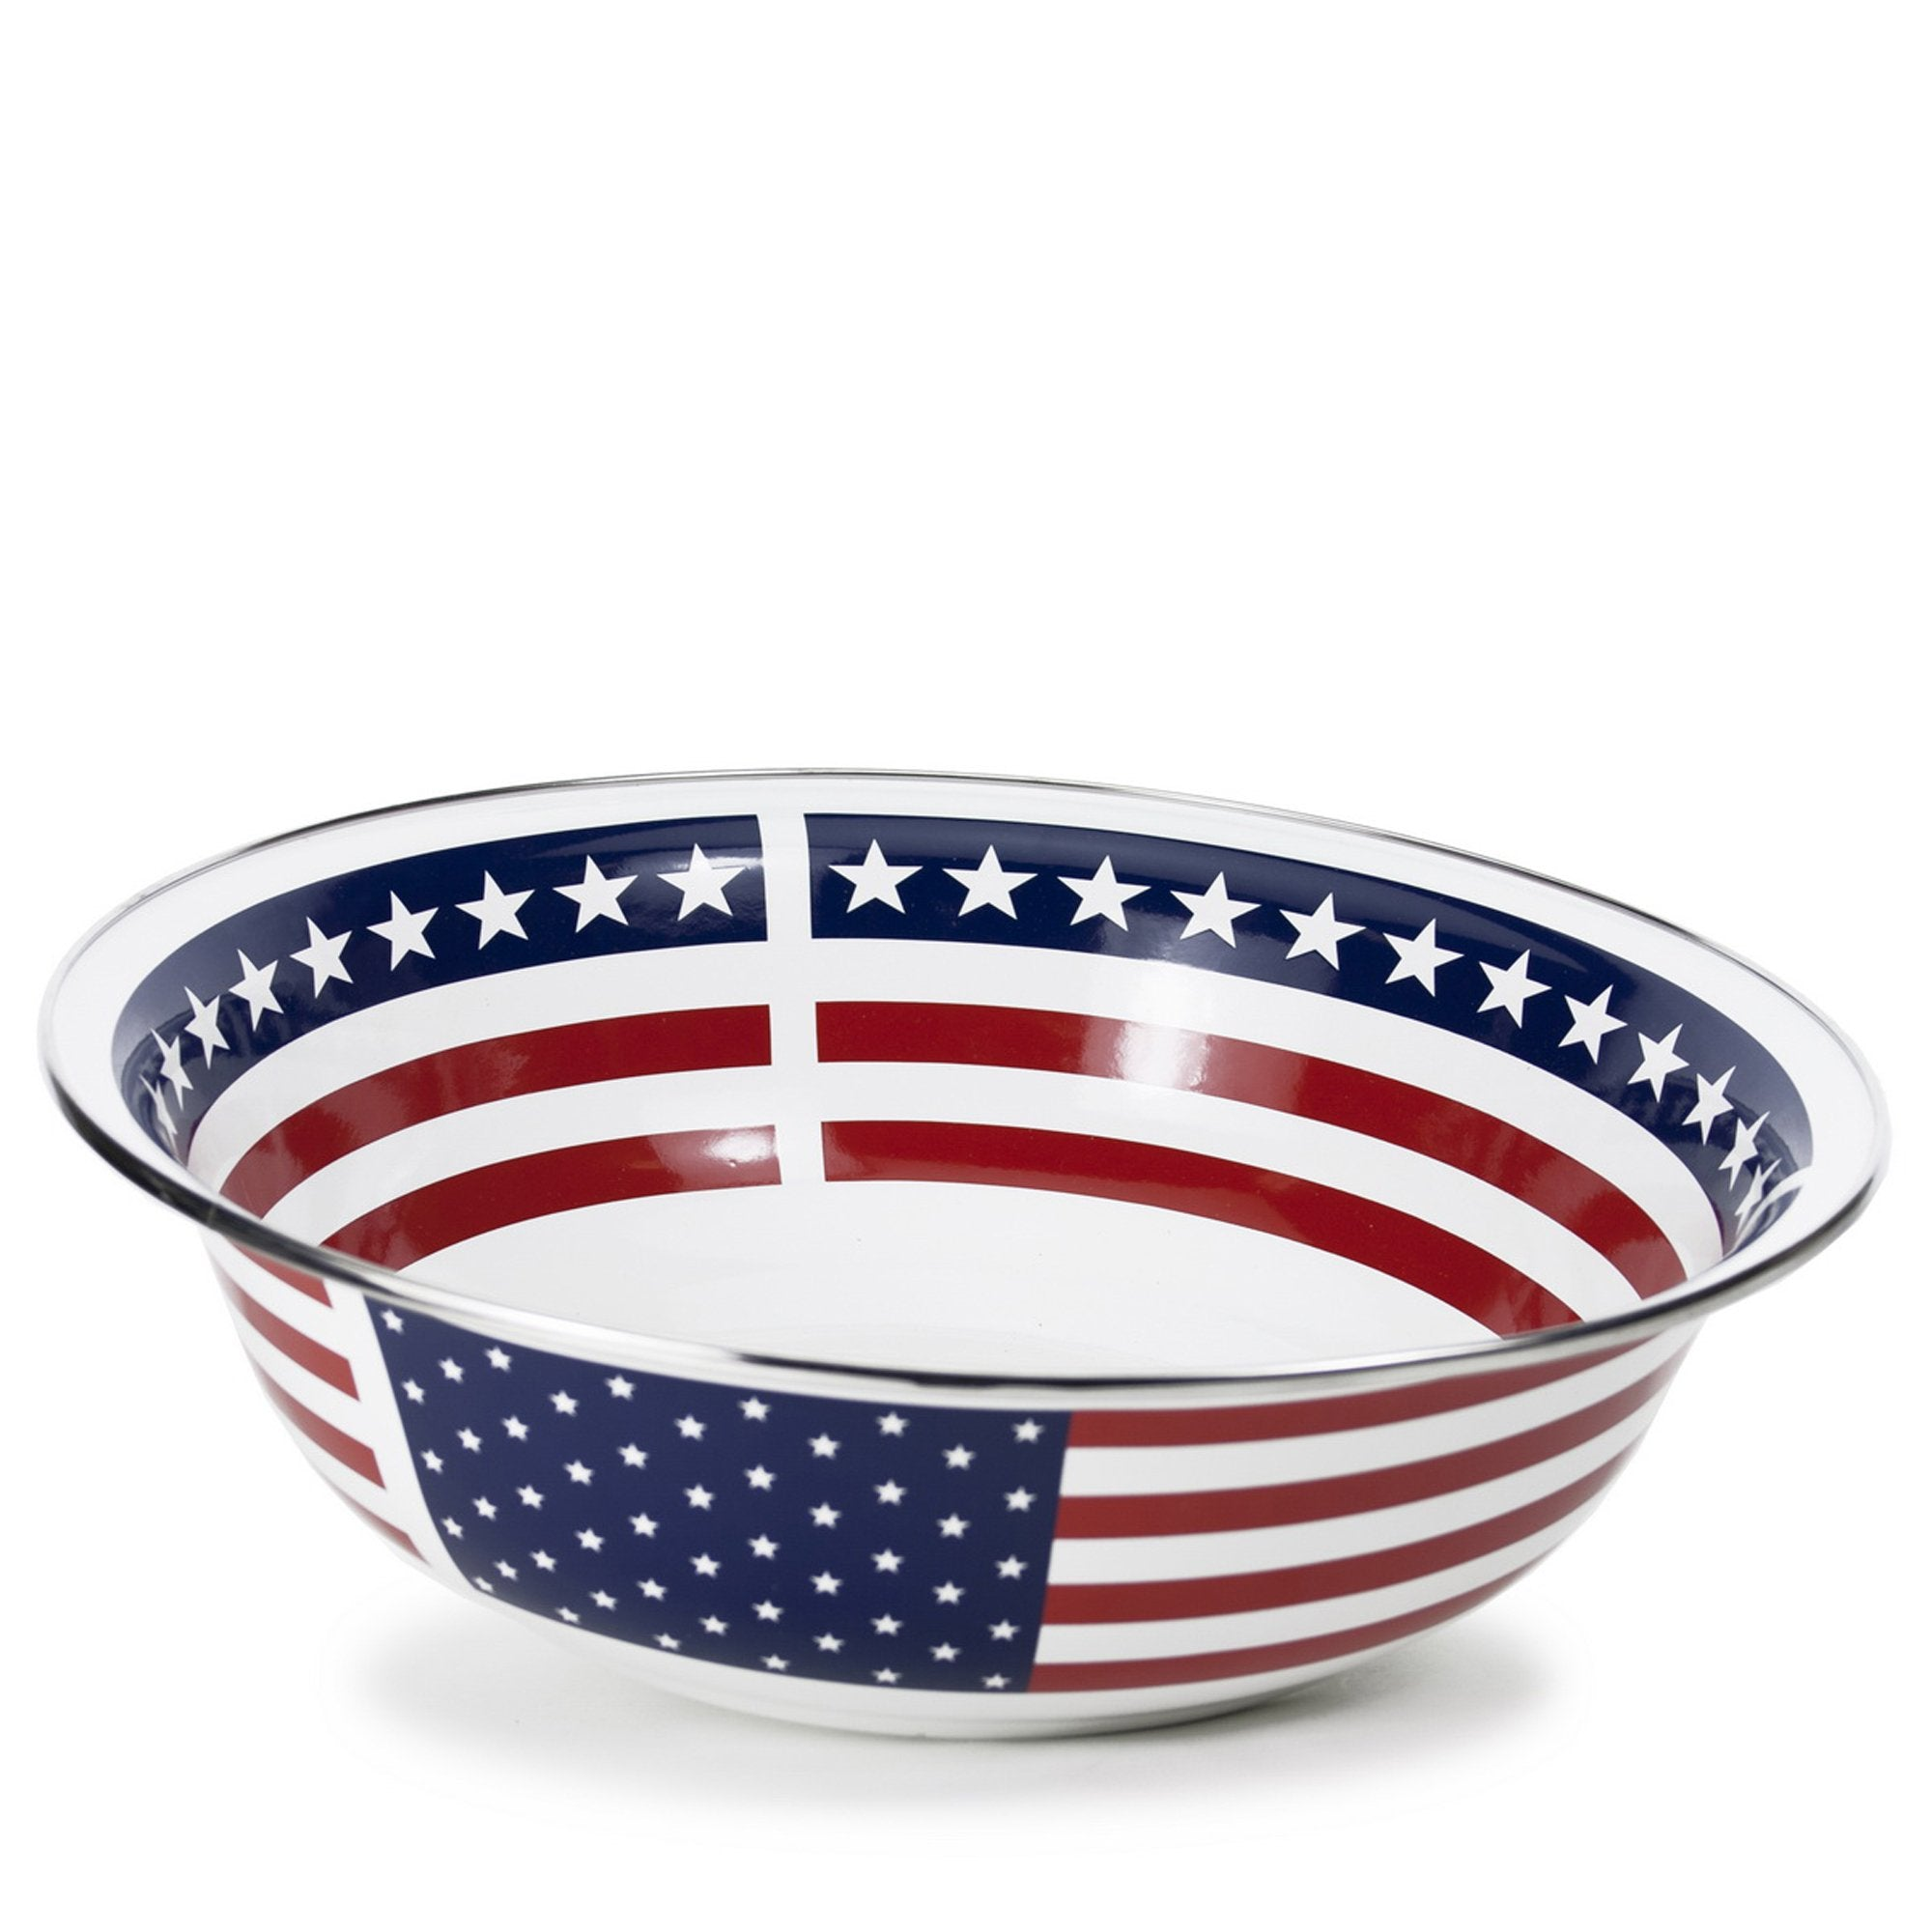 SS03 - Stars & Stripes Serving Basin Product 1